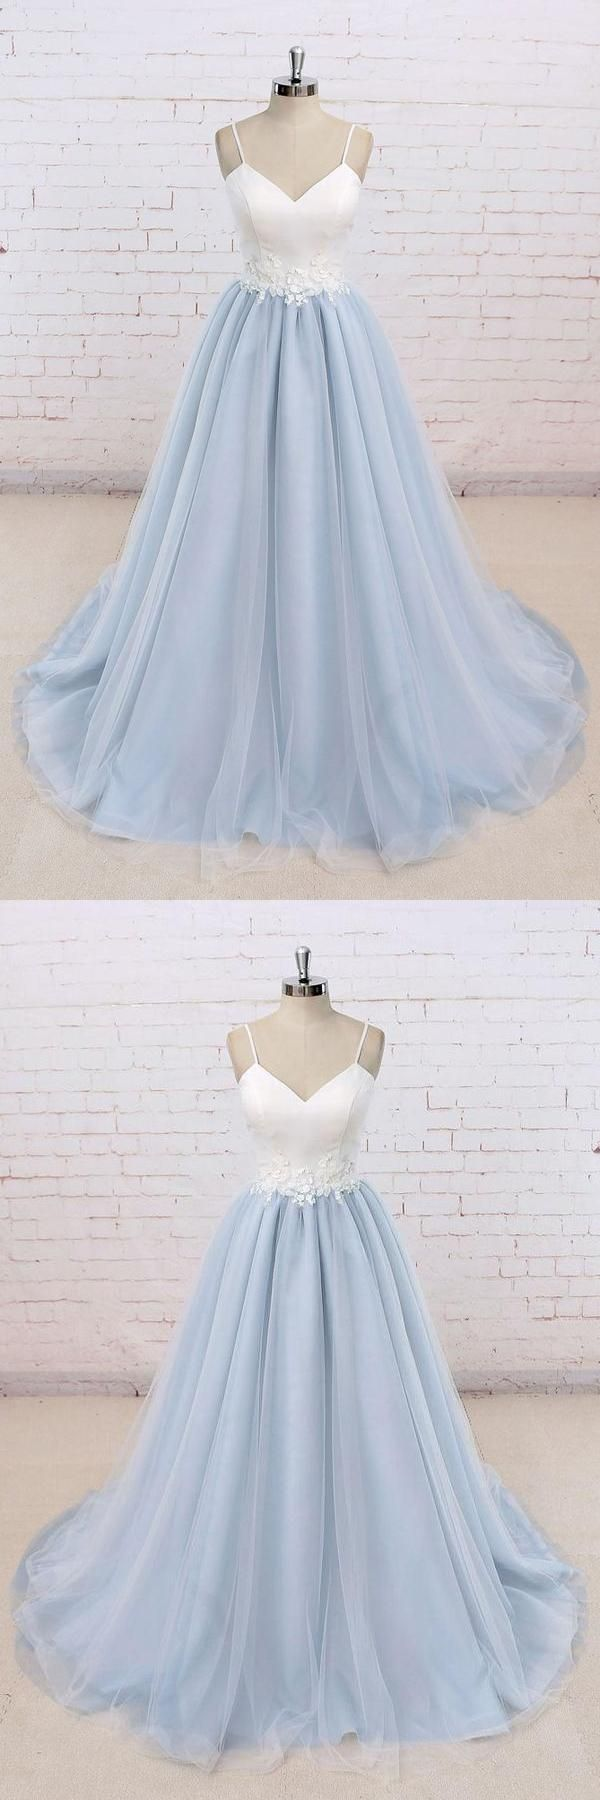 Outlet fancy simple prom dresses prom dresses blue white prom